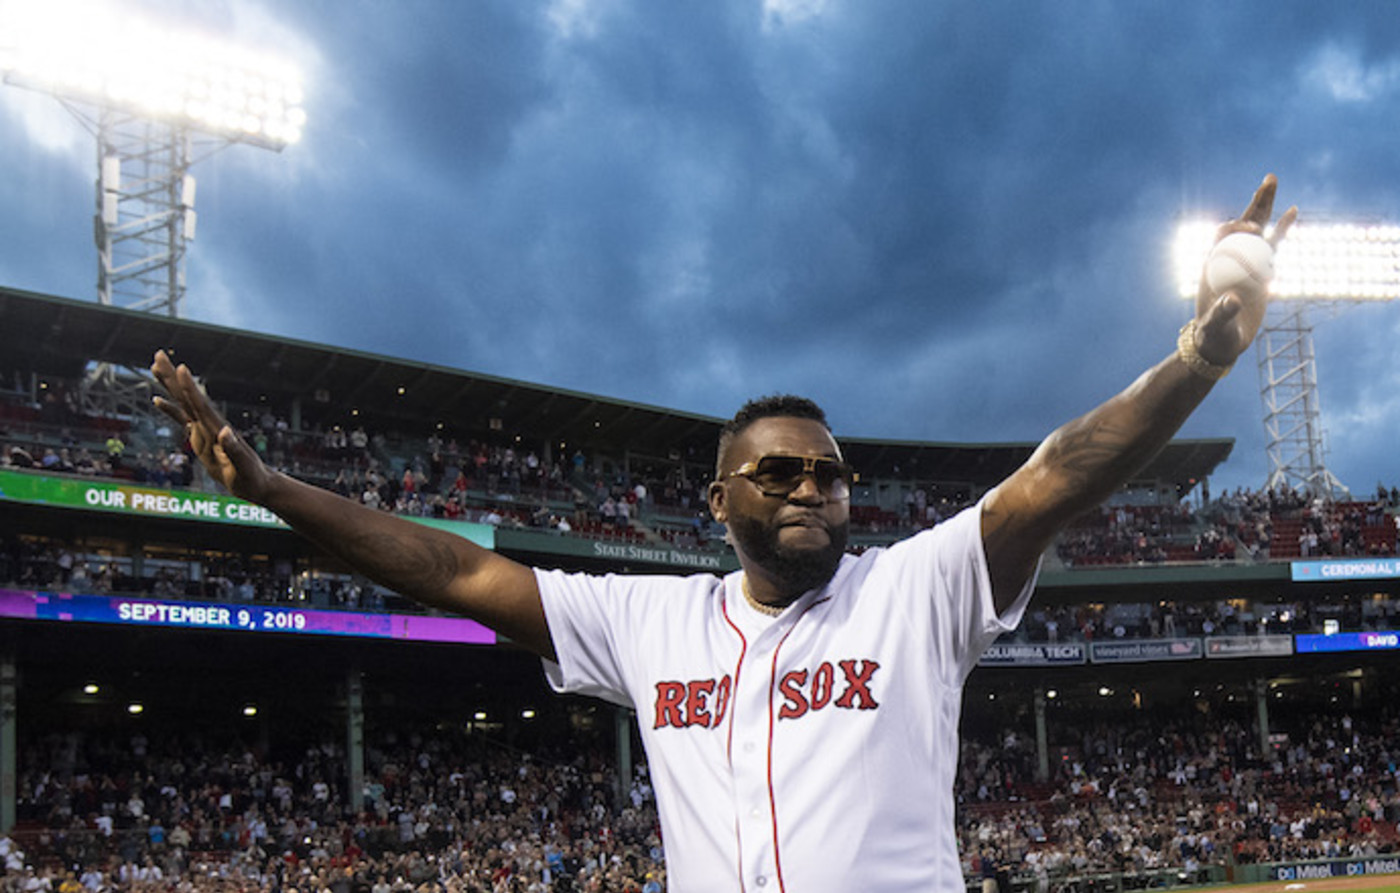 David Ortiz is introduced before throwing out first pitch as he returns to Fenway Park.